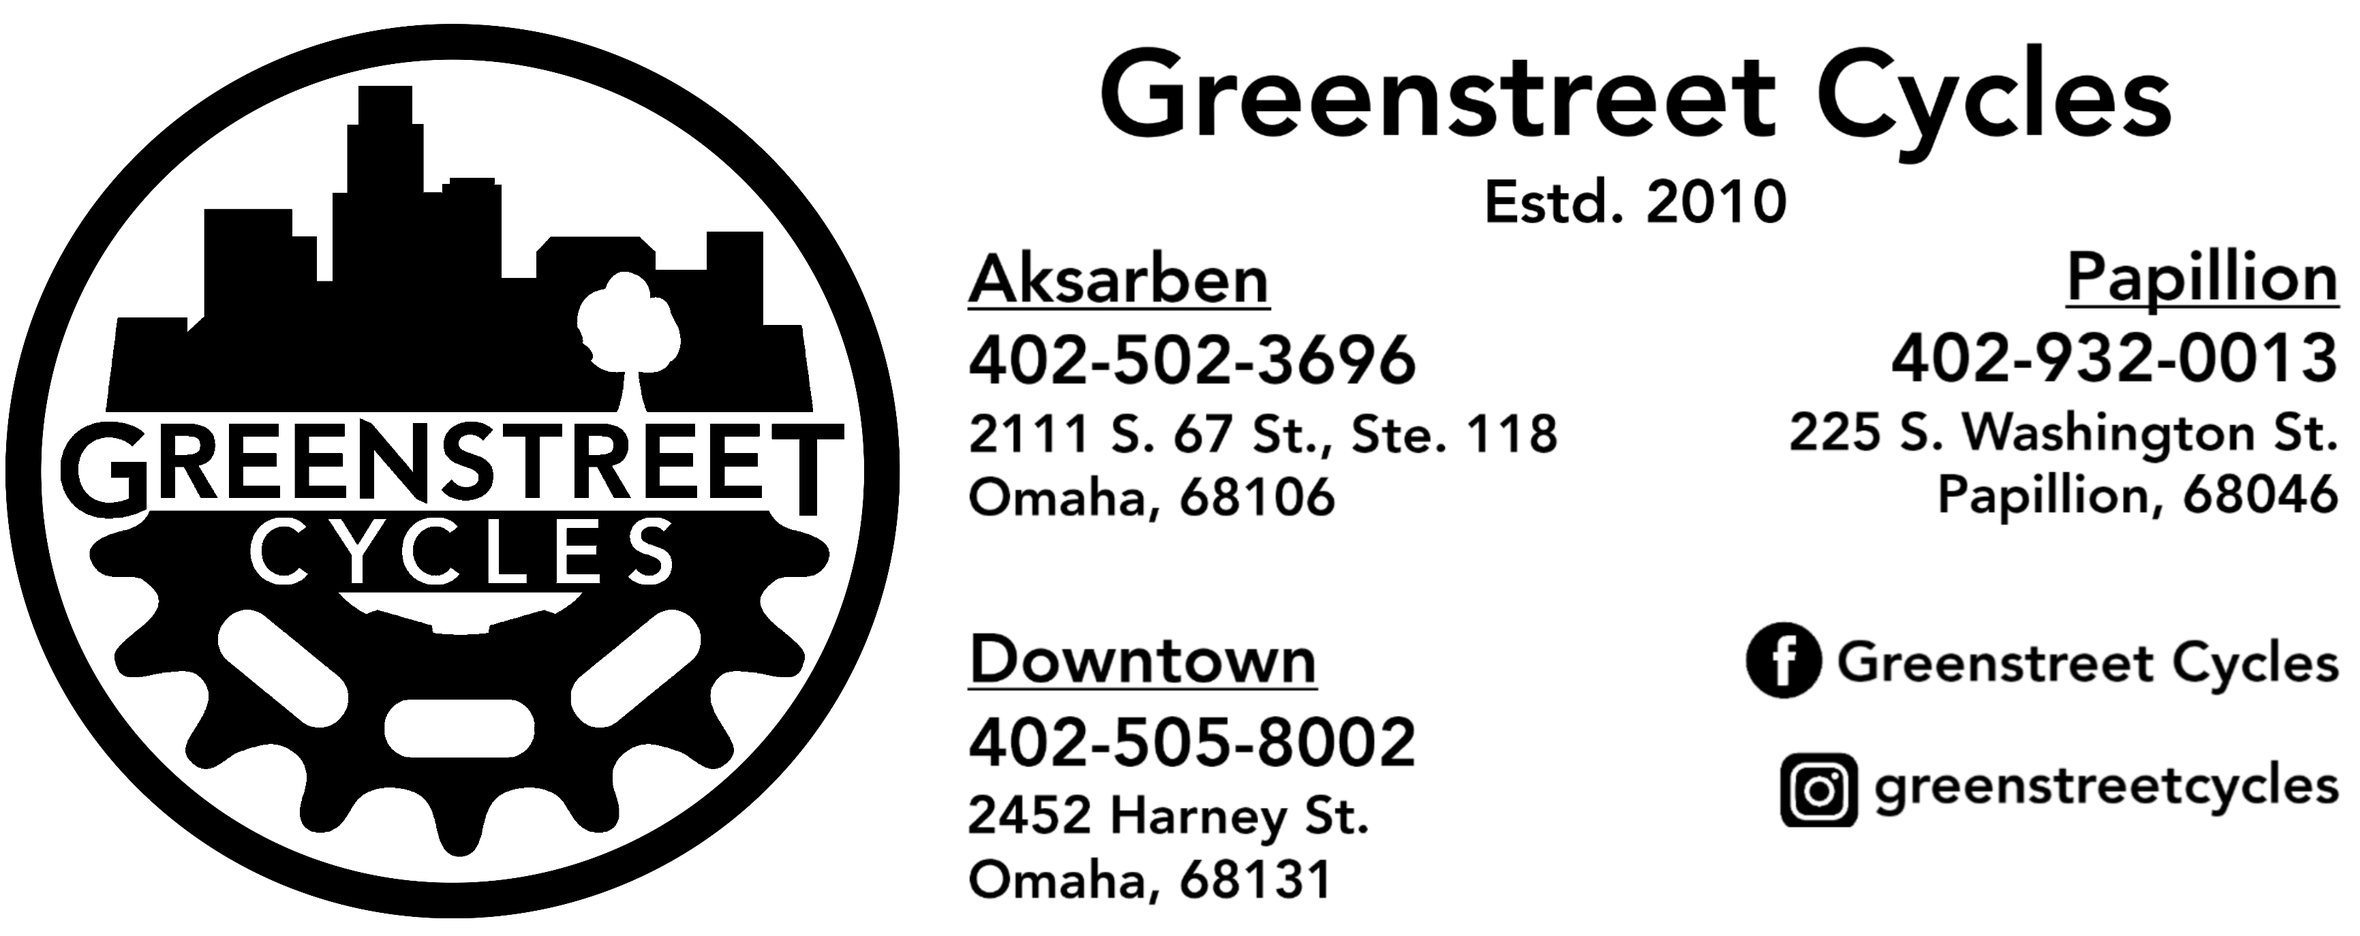 Greenstreet Cycles